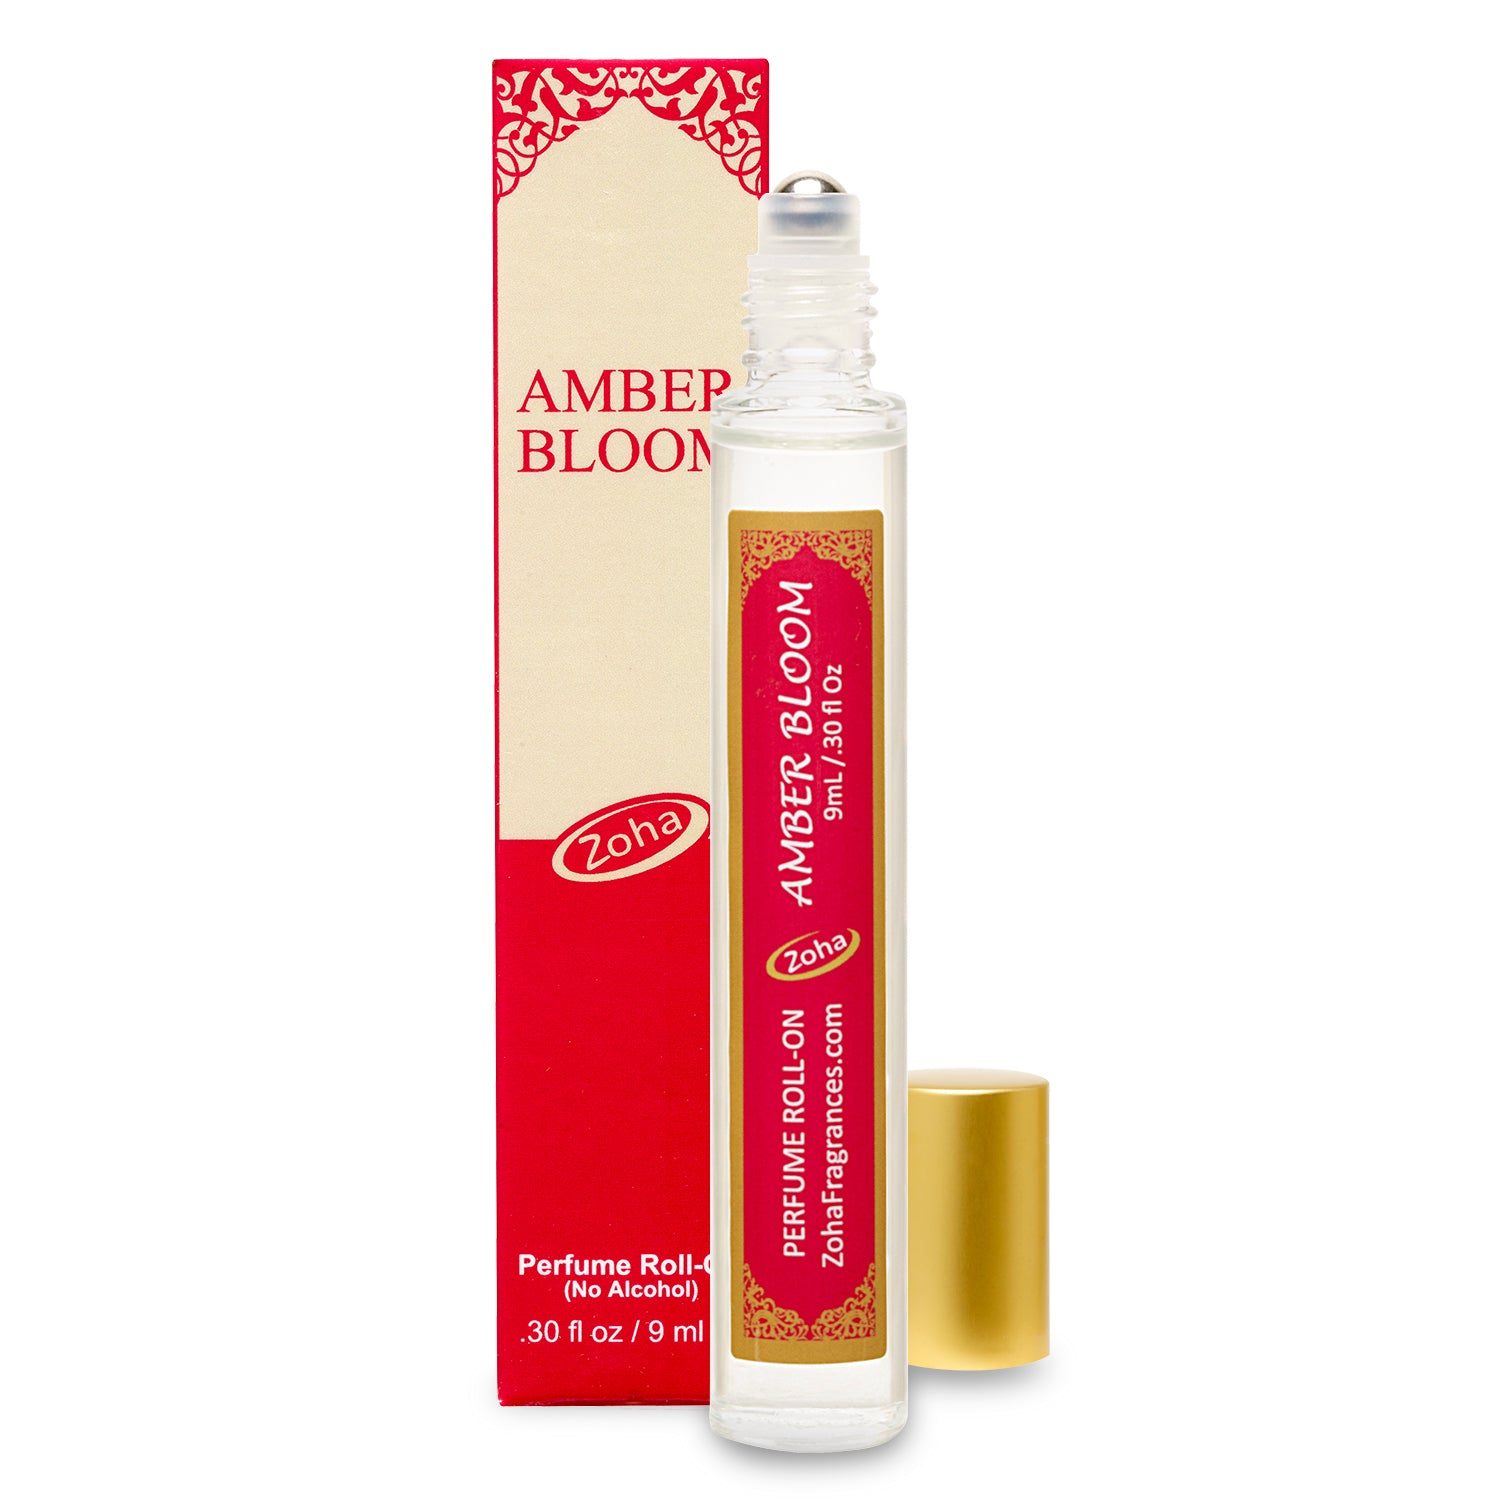 Amber Bloom (No Alcohol) Perfume Oil Roller by Zoha Fragrances